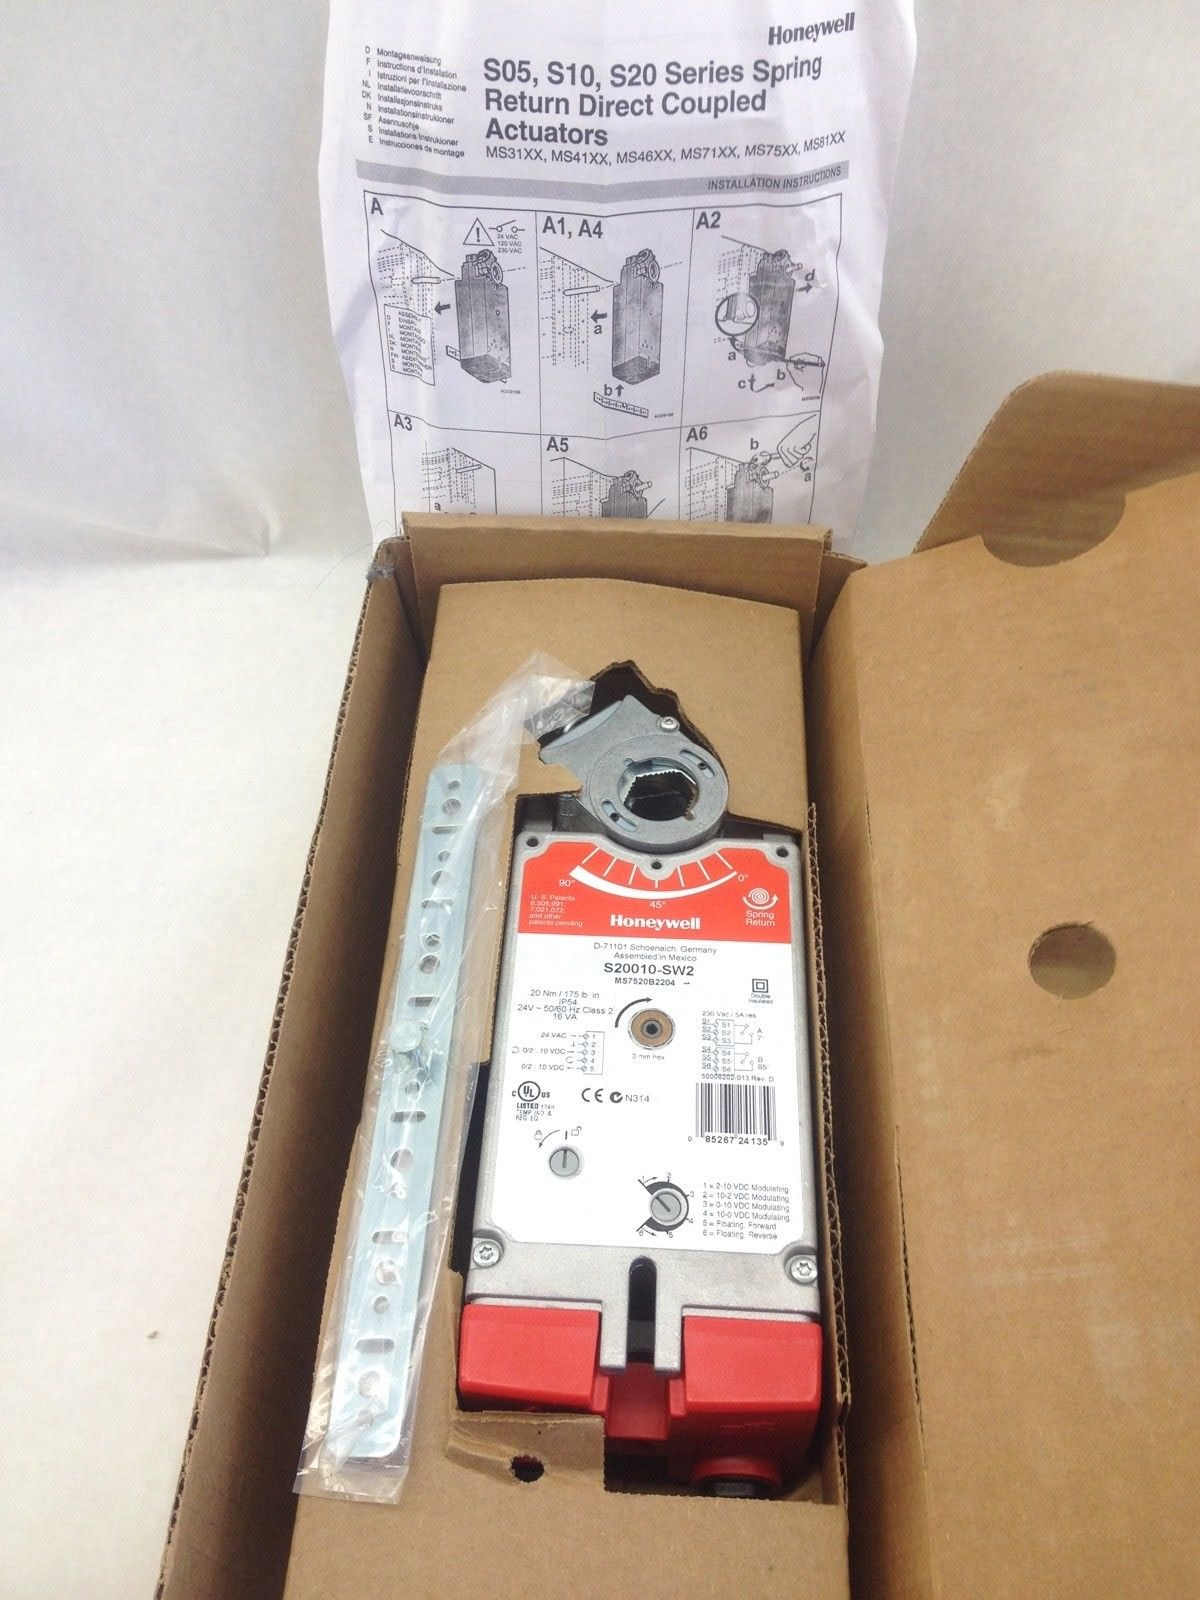 hight resolution of honeywell s20010 sw2 folding actuator with spring return plug in mount b408